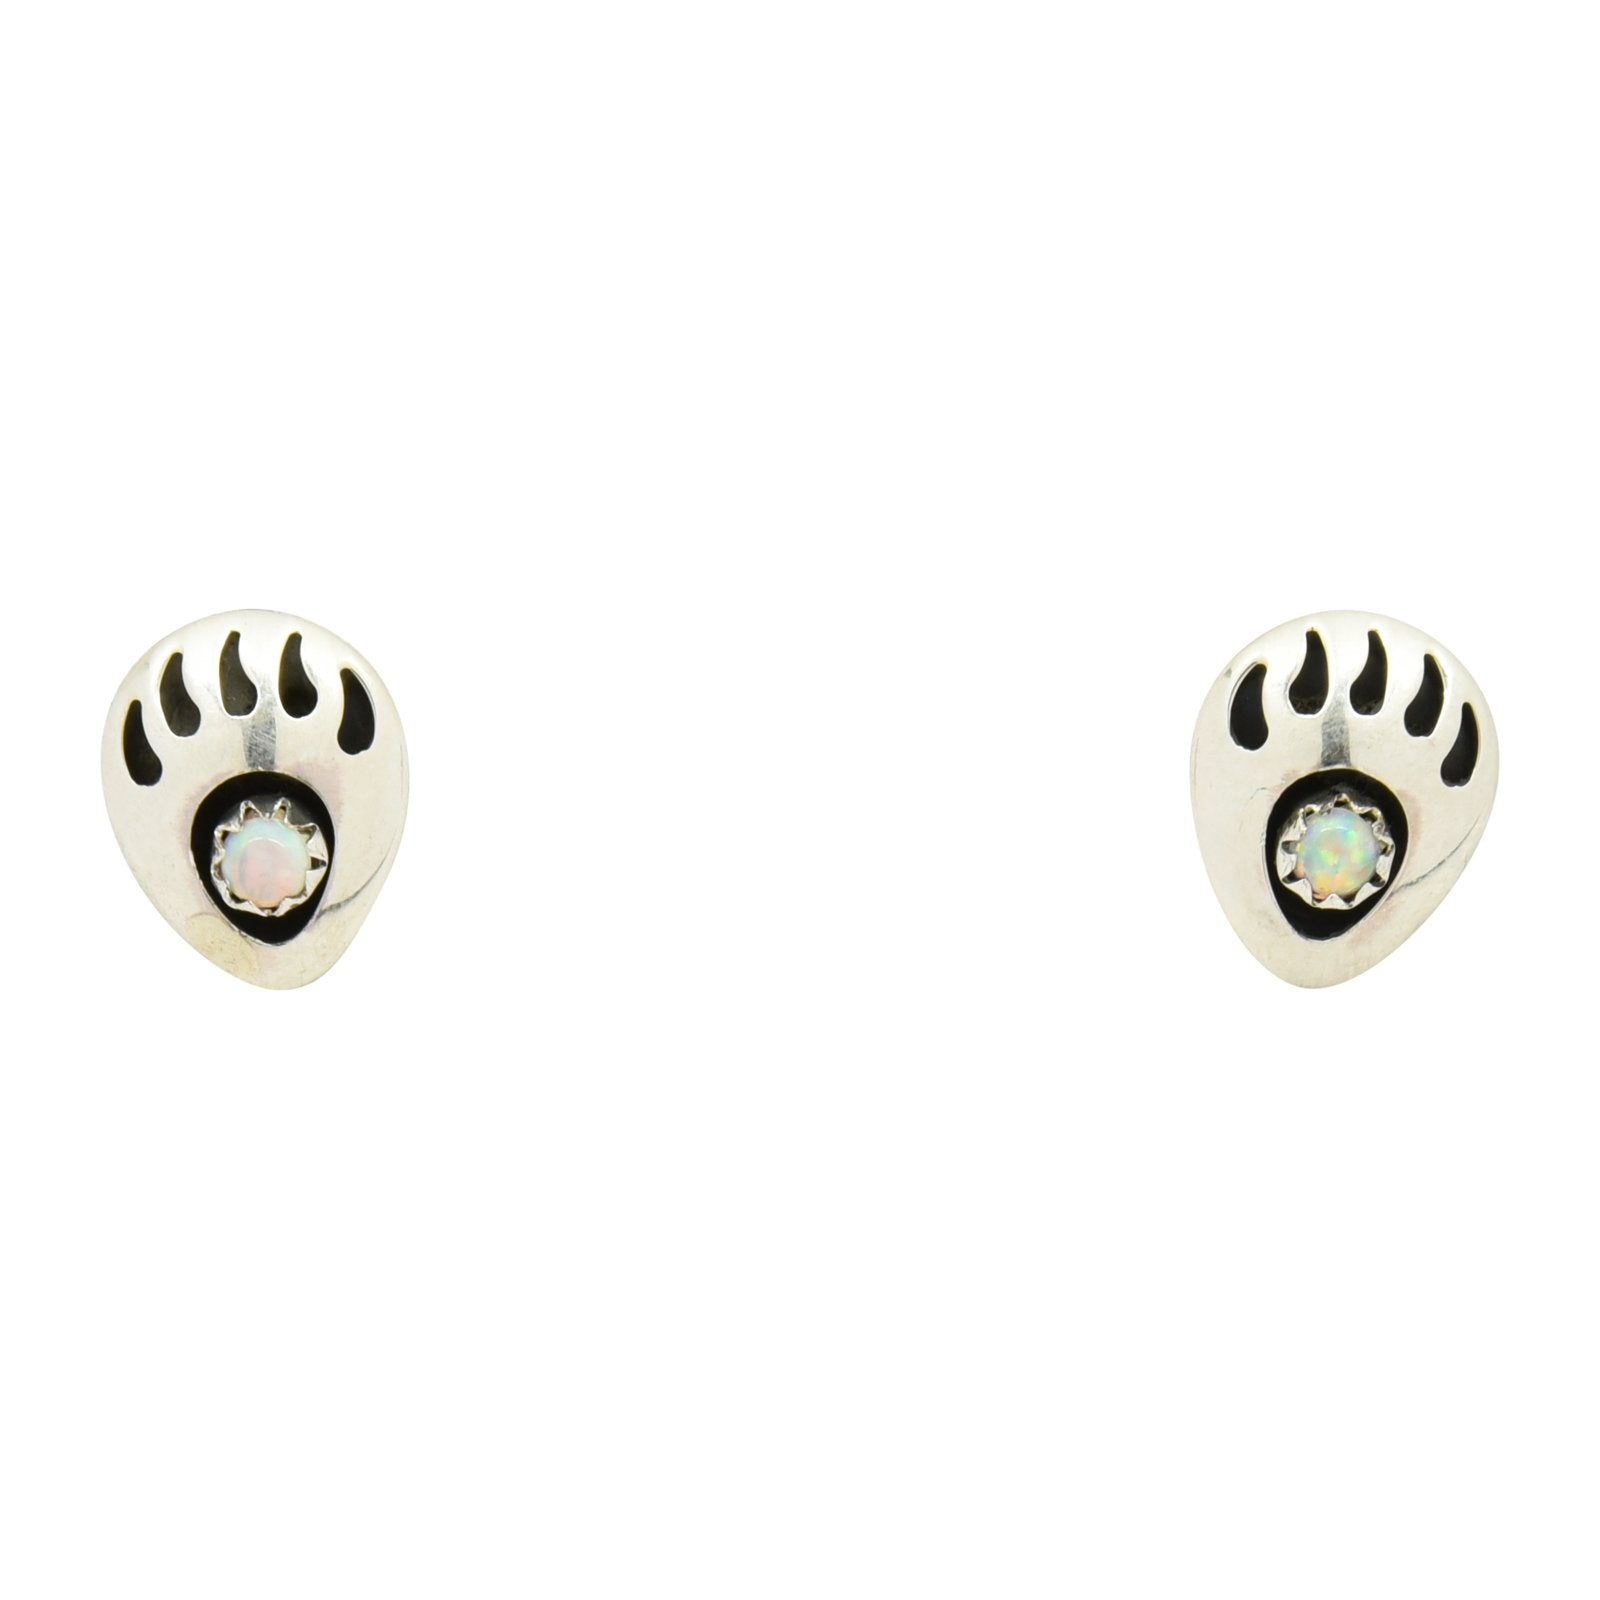 Leta Parker White Lab Opal Mini Bear Paw Stud Earrings Sterling Silver - Turquoise925